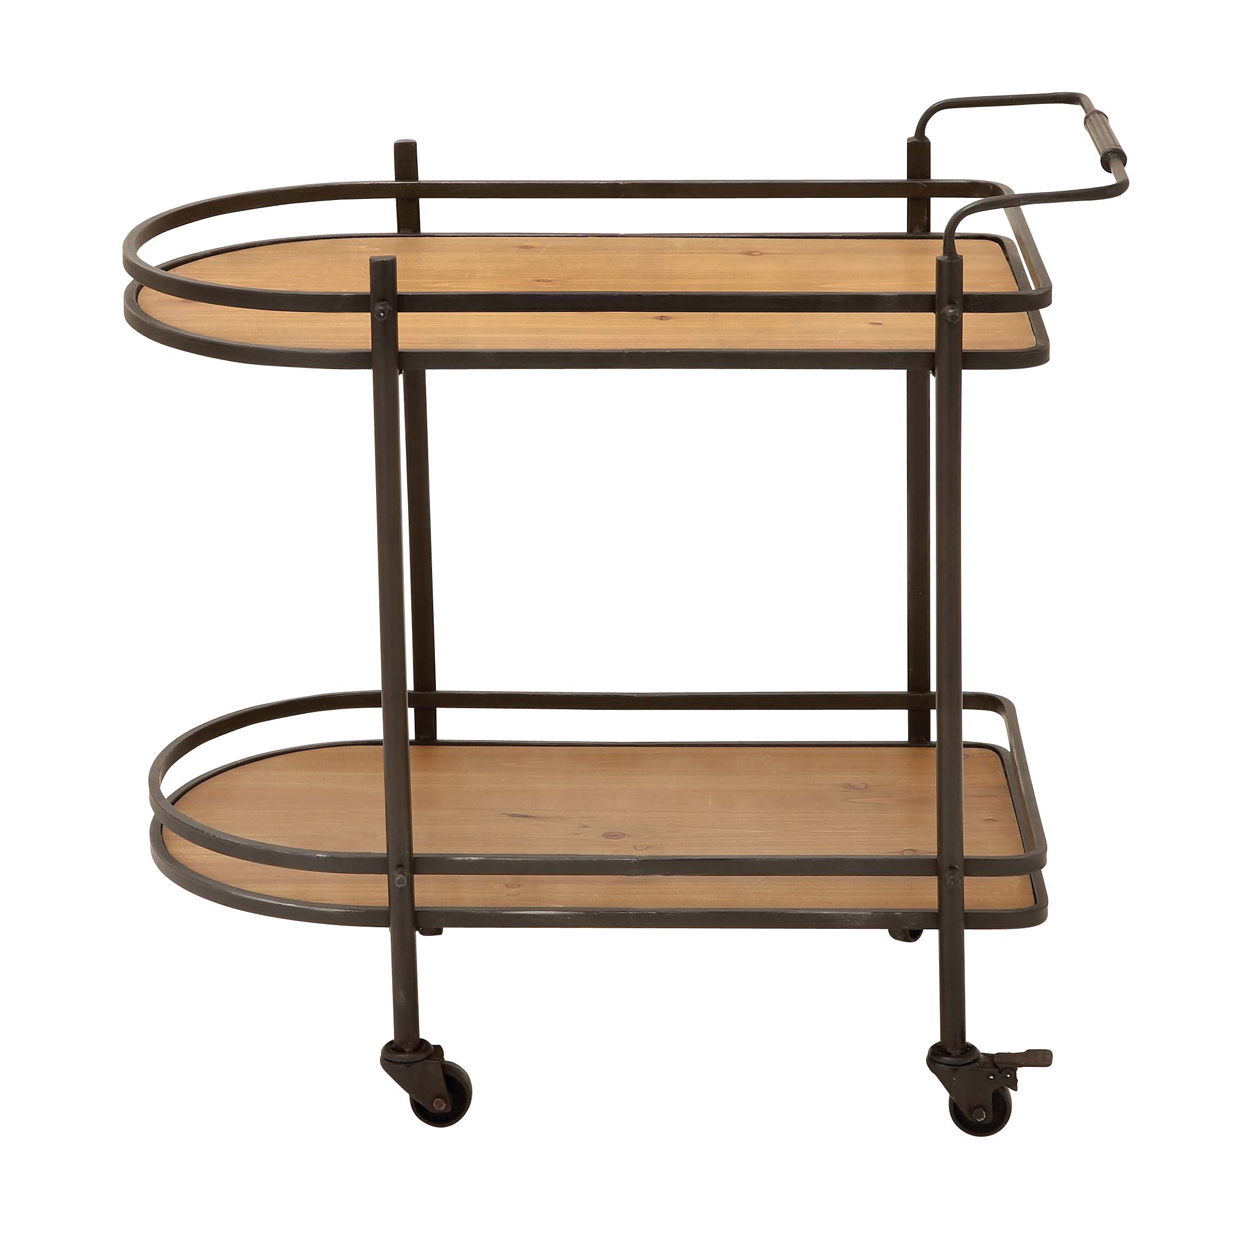 ecworld Contemporary Rolling Mobile Tea, Serving and Kitchen Bar Cart at Sears.com